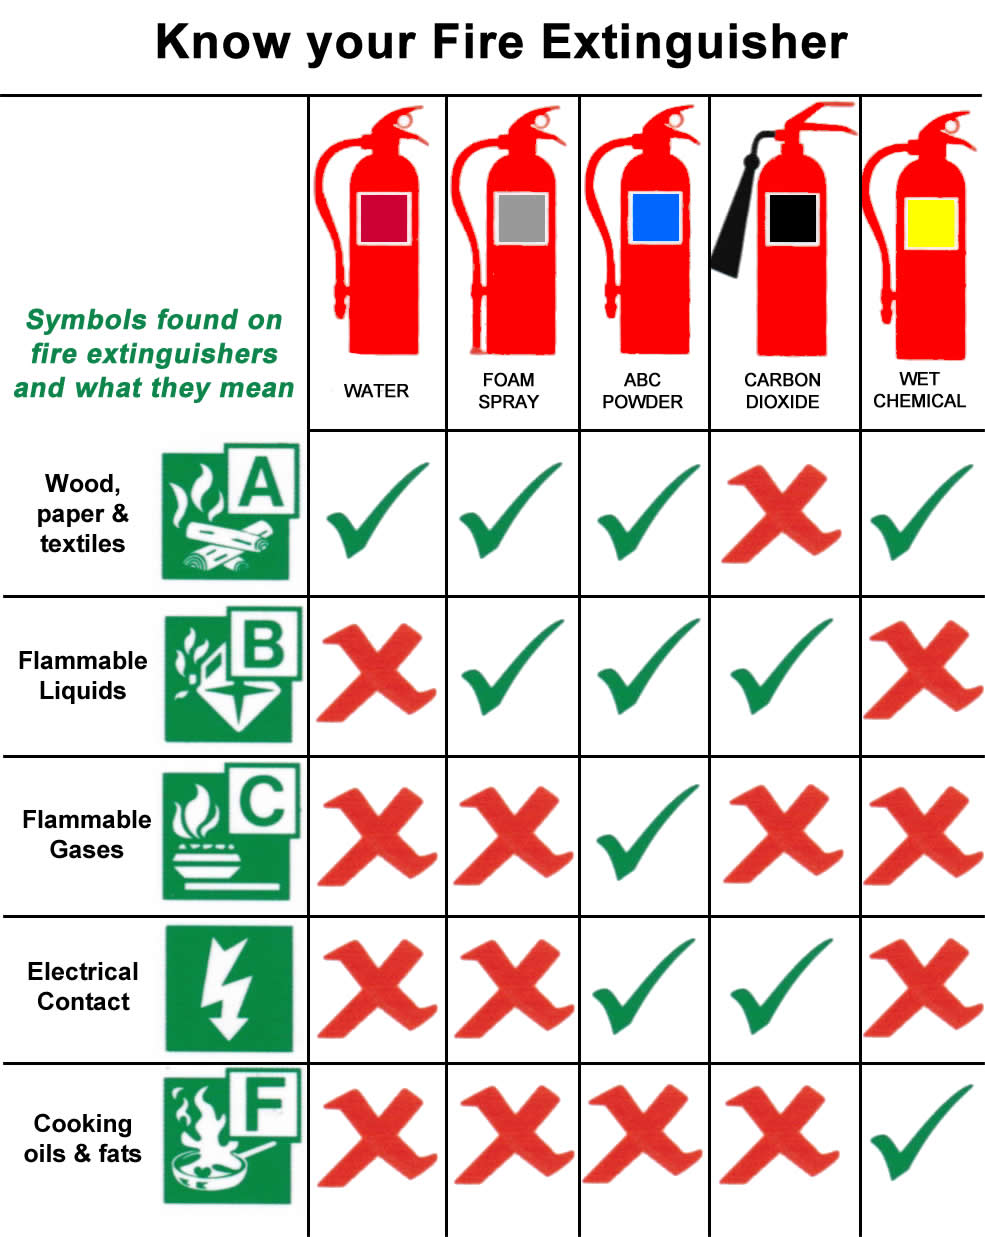 What Fire Extinguisher To Use | Which Fire Extinguisher